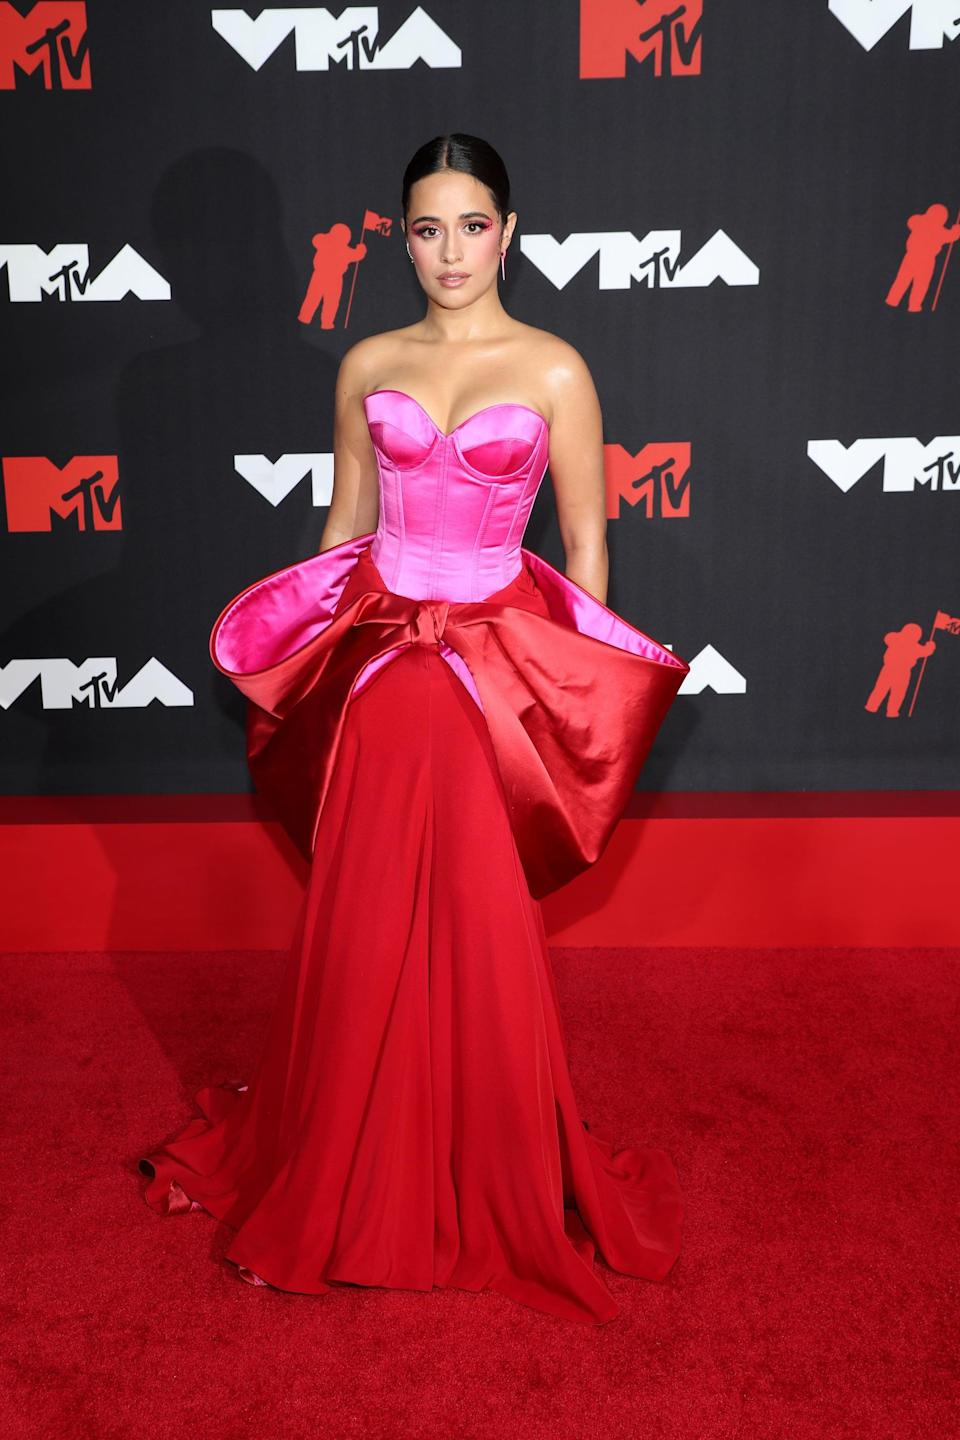 <p>Wearing an Alexis Mabille Couture gown with Giuseppe Zanotti shoes and jewels from Melissa Kaye and Katkim.</p>